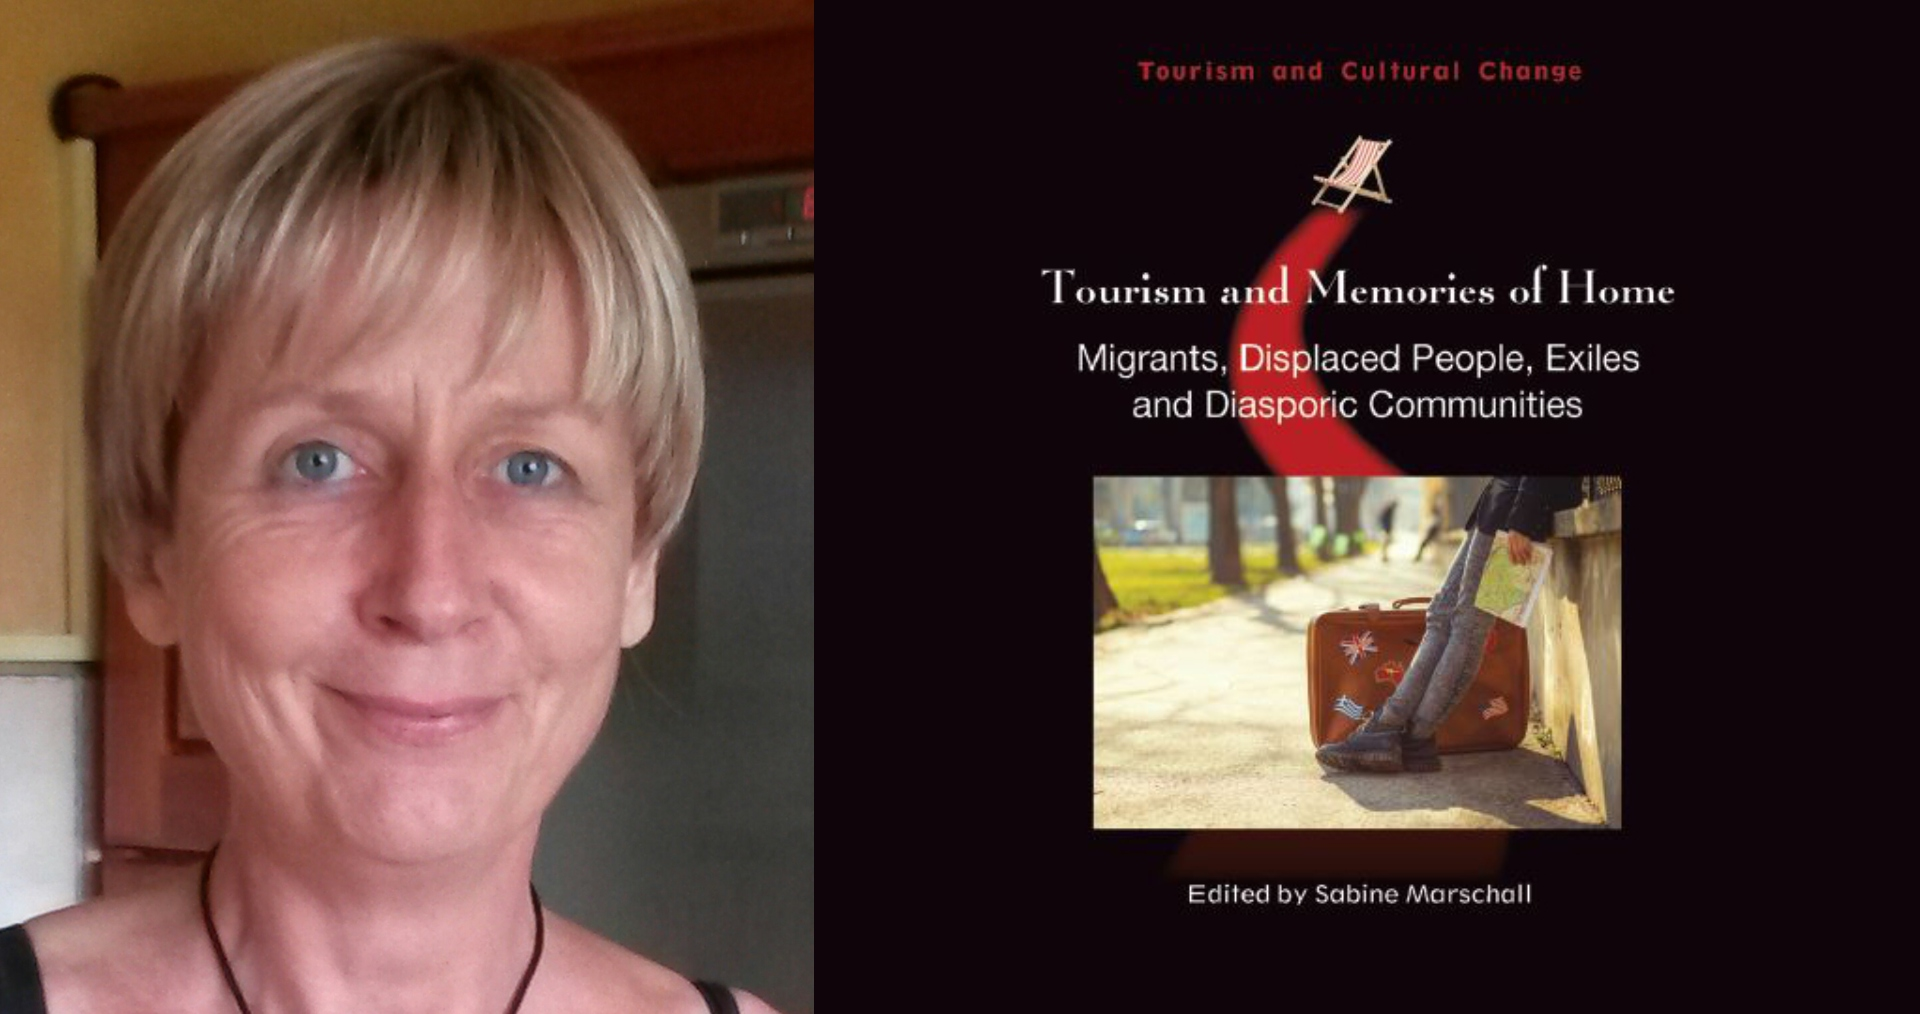 Professor Sabine Marschall and her award-winning book